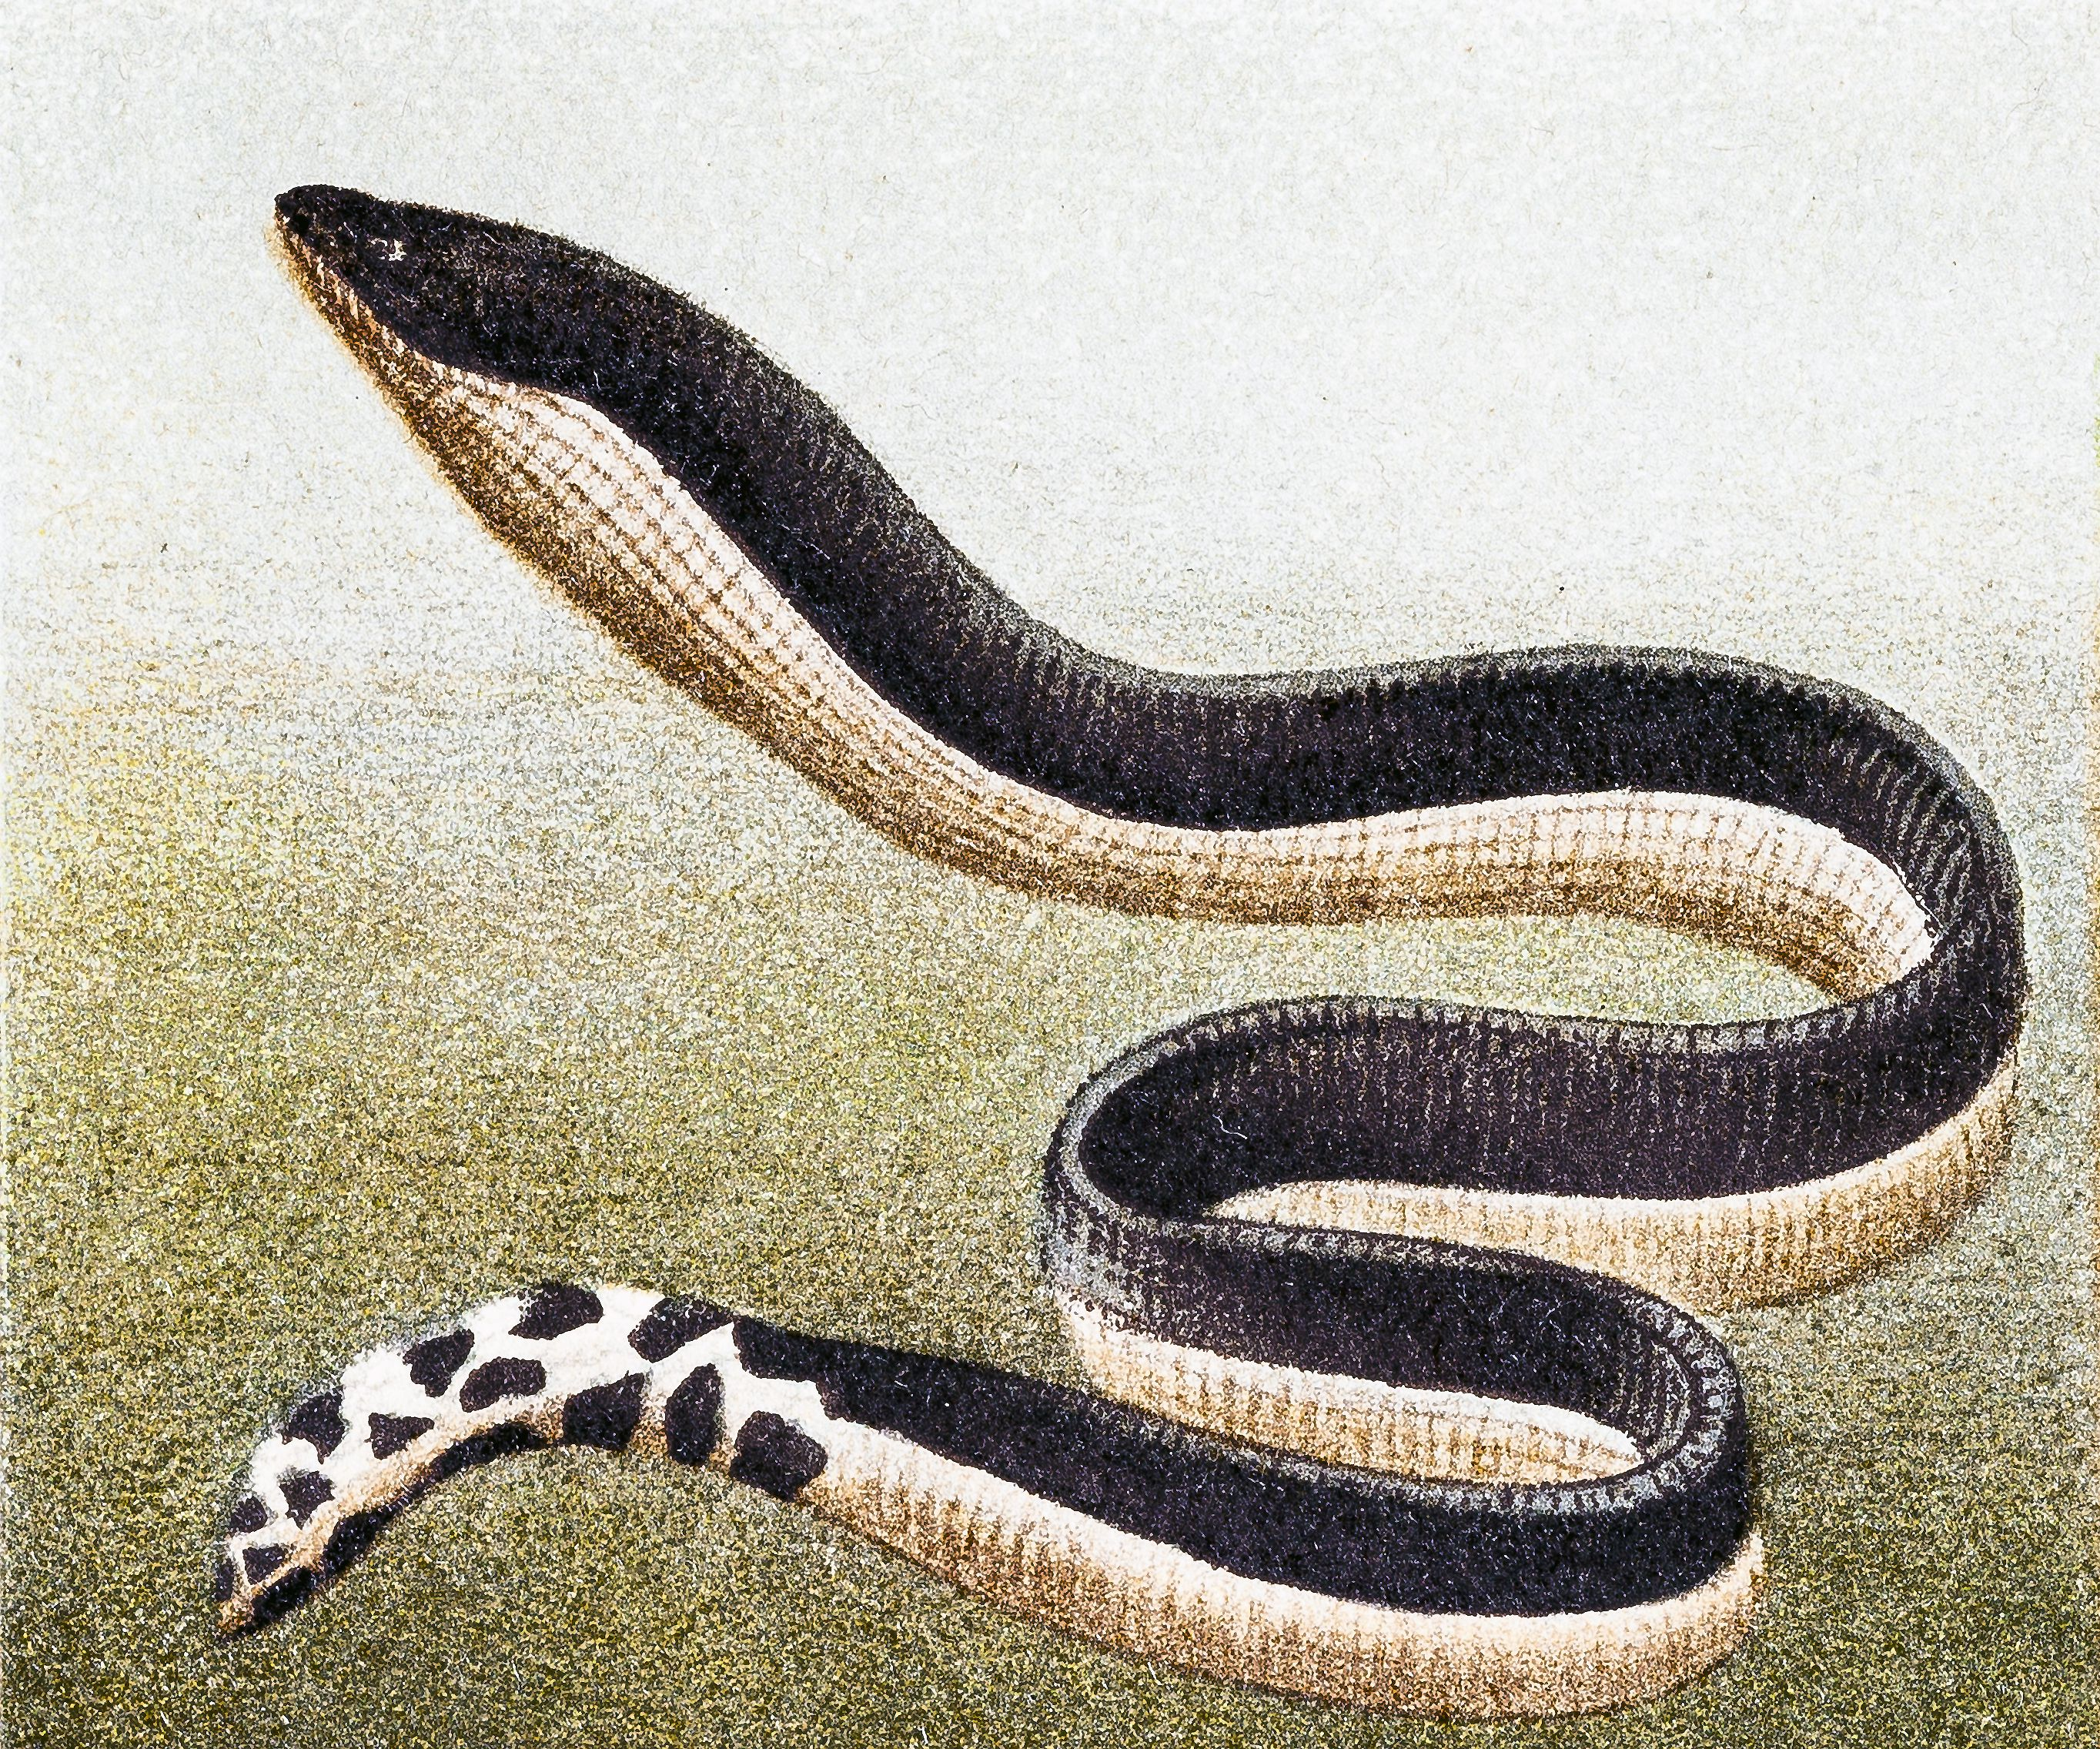 Yellow-bellied sea snake (Hydrophis platurus), illustrating the body shape of a true sea snake.